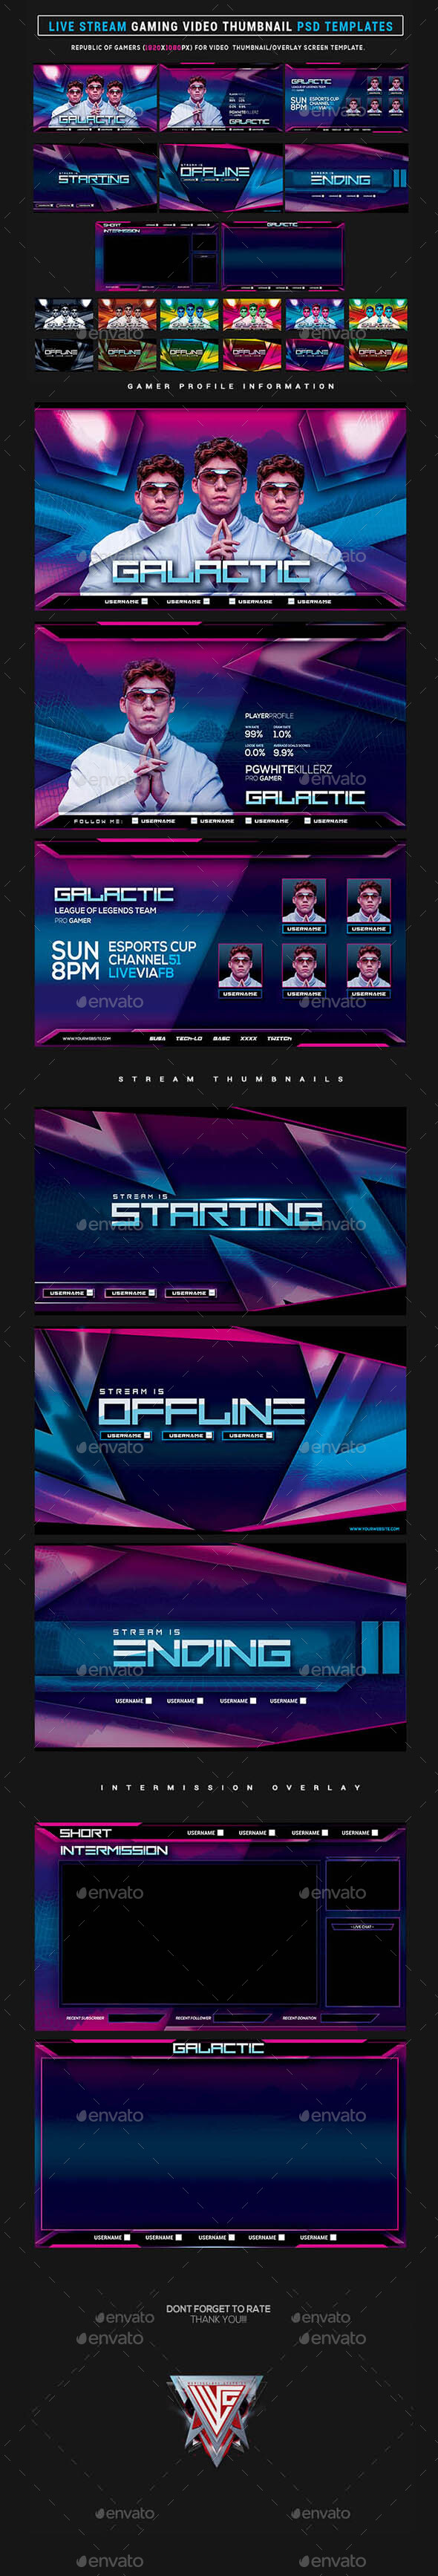 Galactic Live Stream Gaming Video Thumbnail / Overlay Photoshop Templates